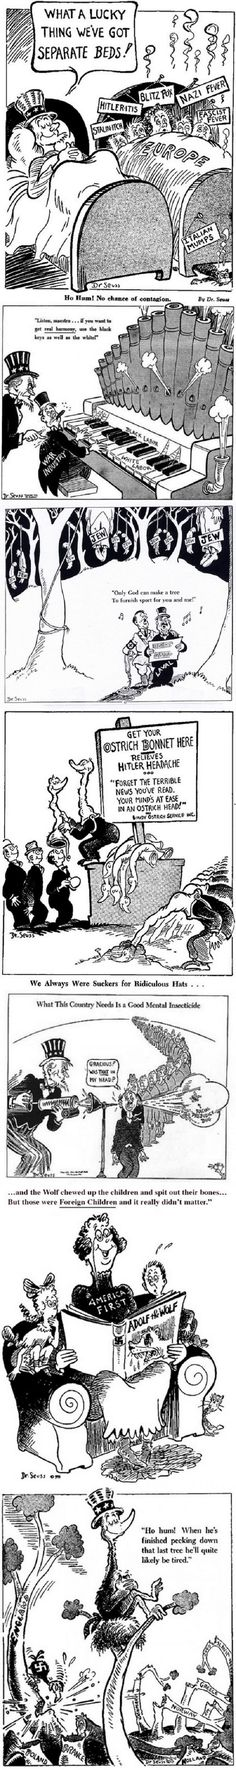 Dr. Seuss WWII Political Cartoons. These are so cool!